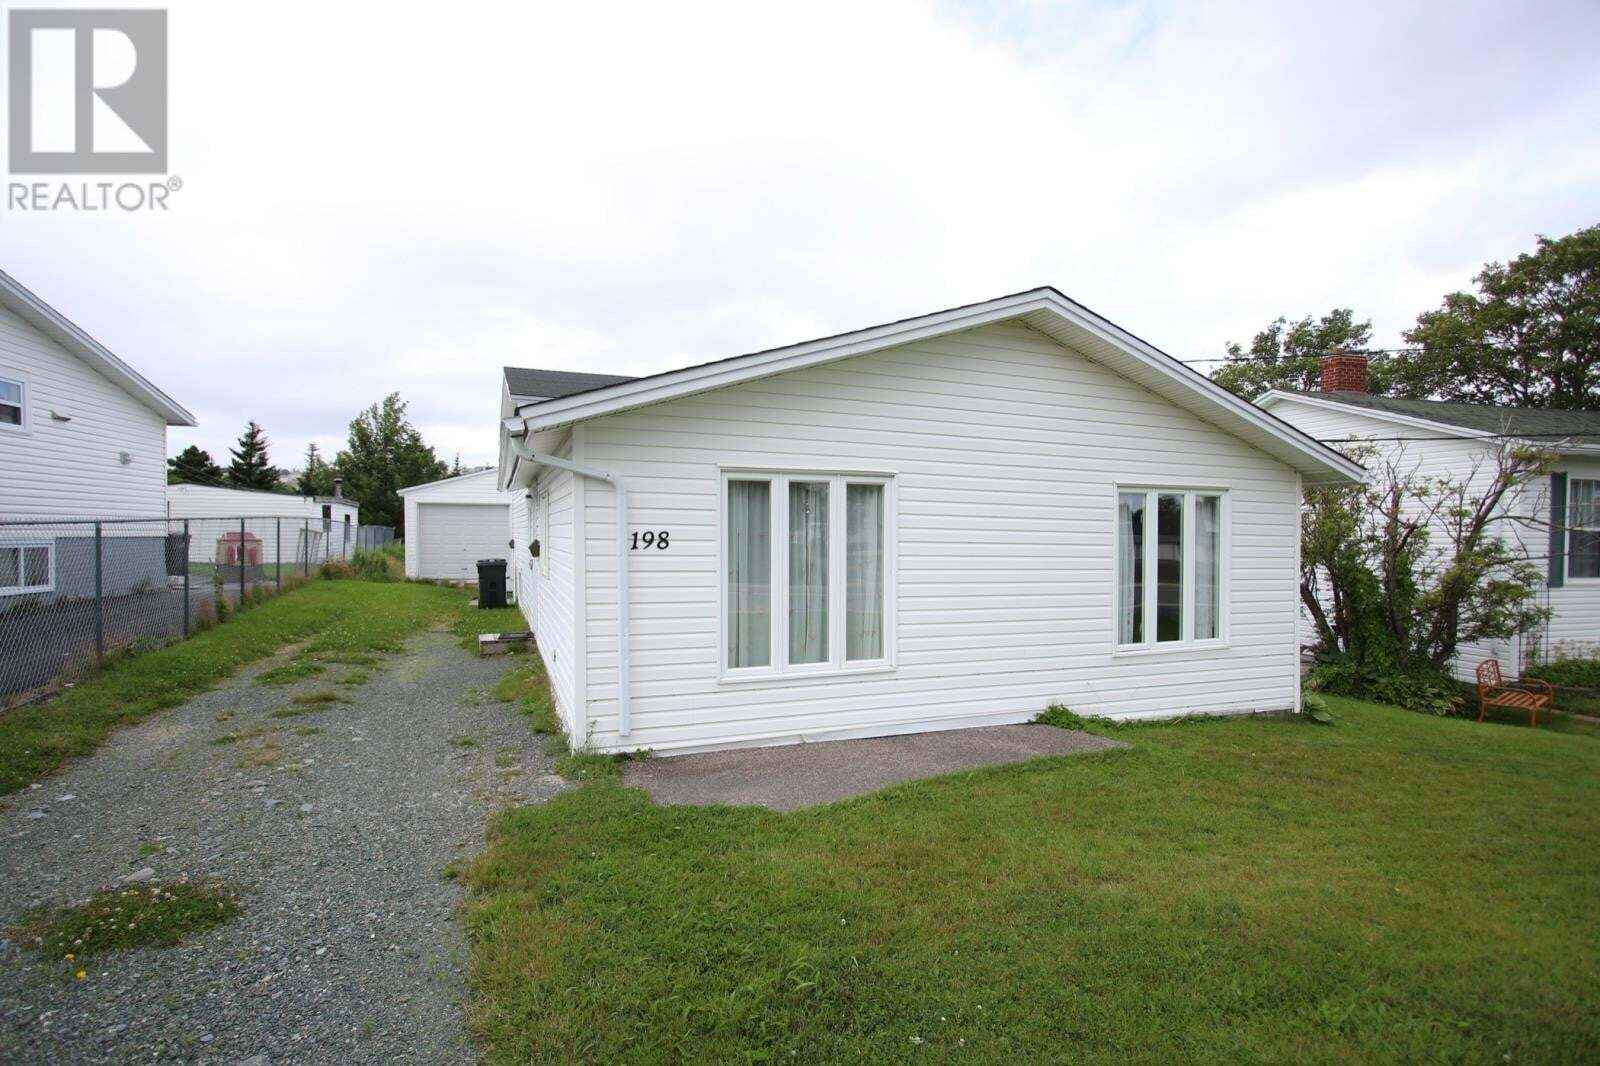 House for sale at 198 Park Ave Mount Pearl Newfoundland - MLS: 1214318